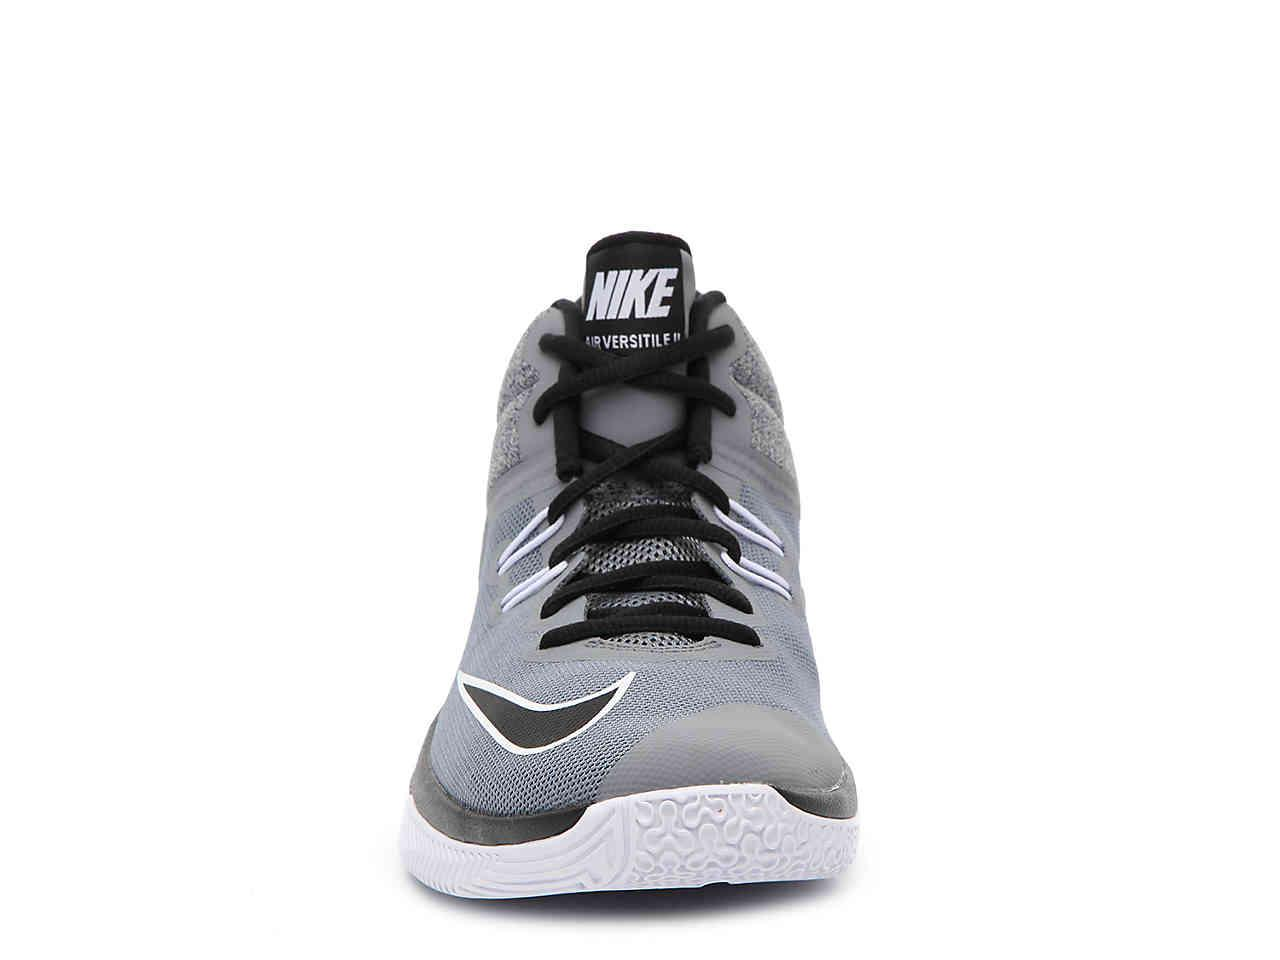 3807ffd15320 Nike Air Versatile Ii Training Shoe in Gray for Men - Lyst